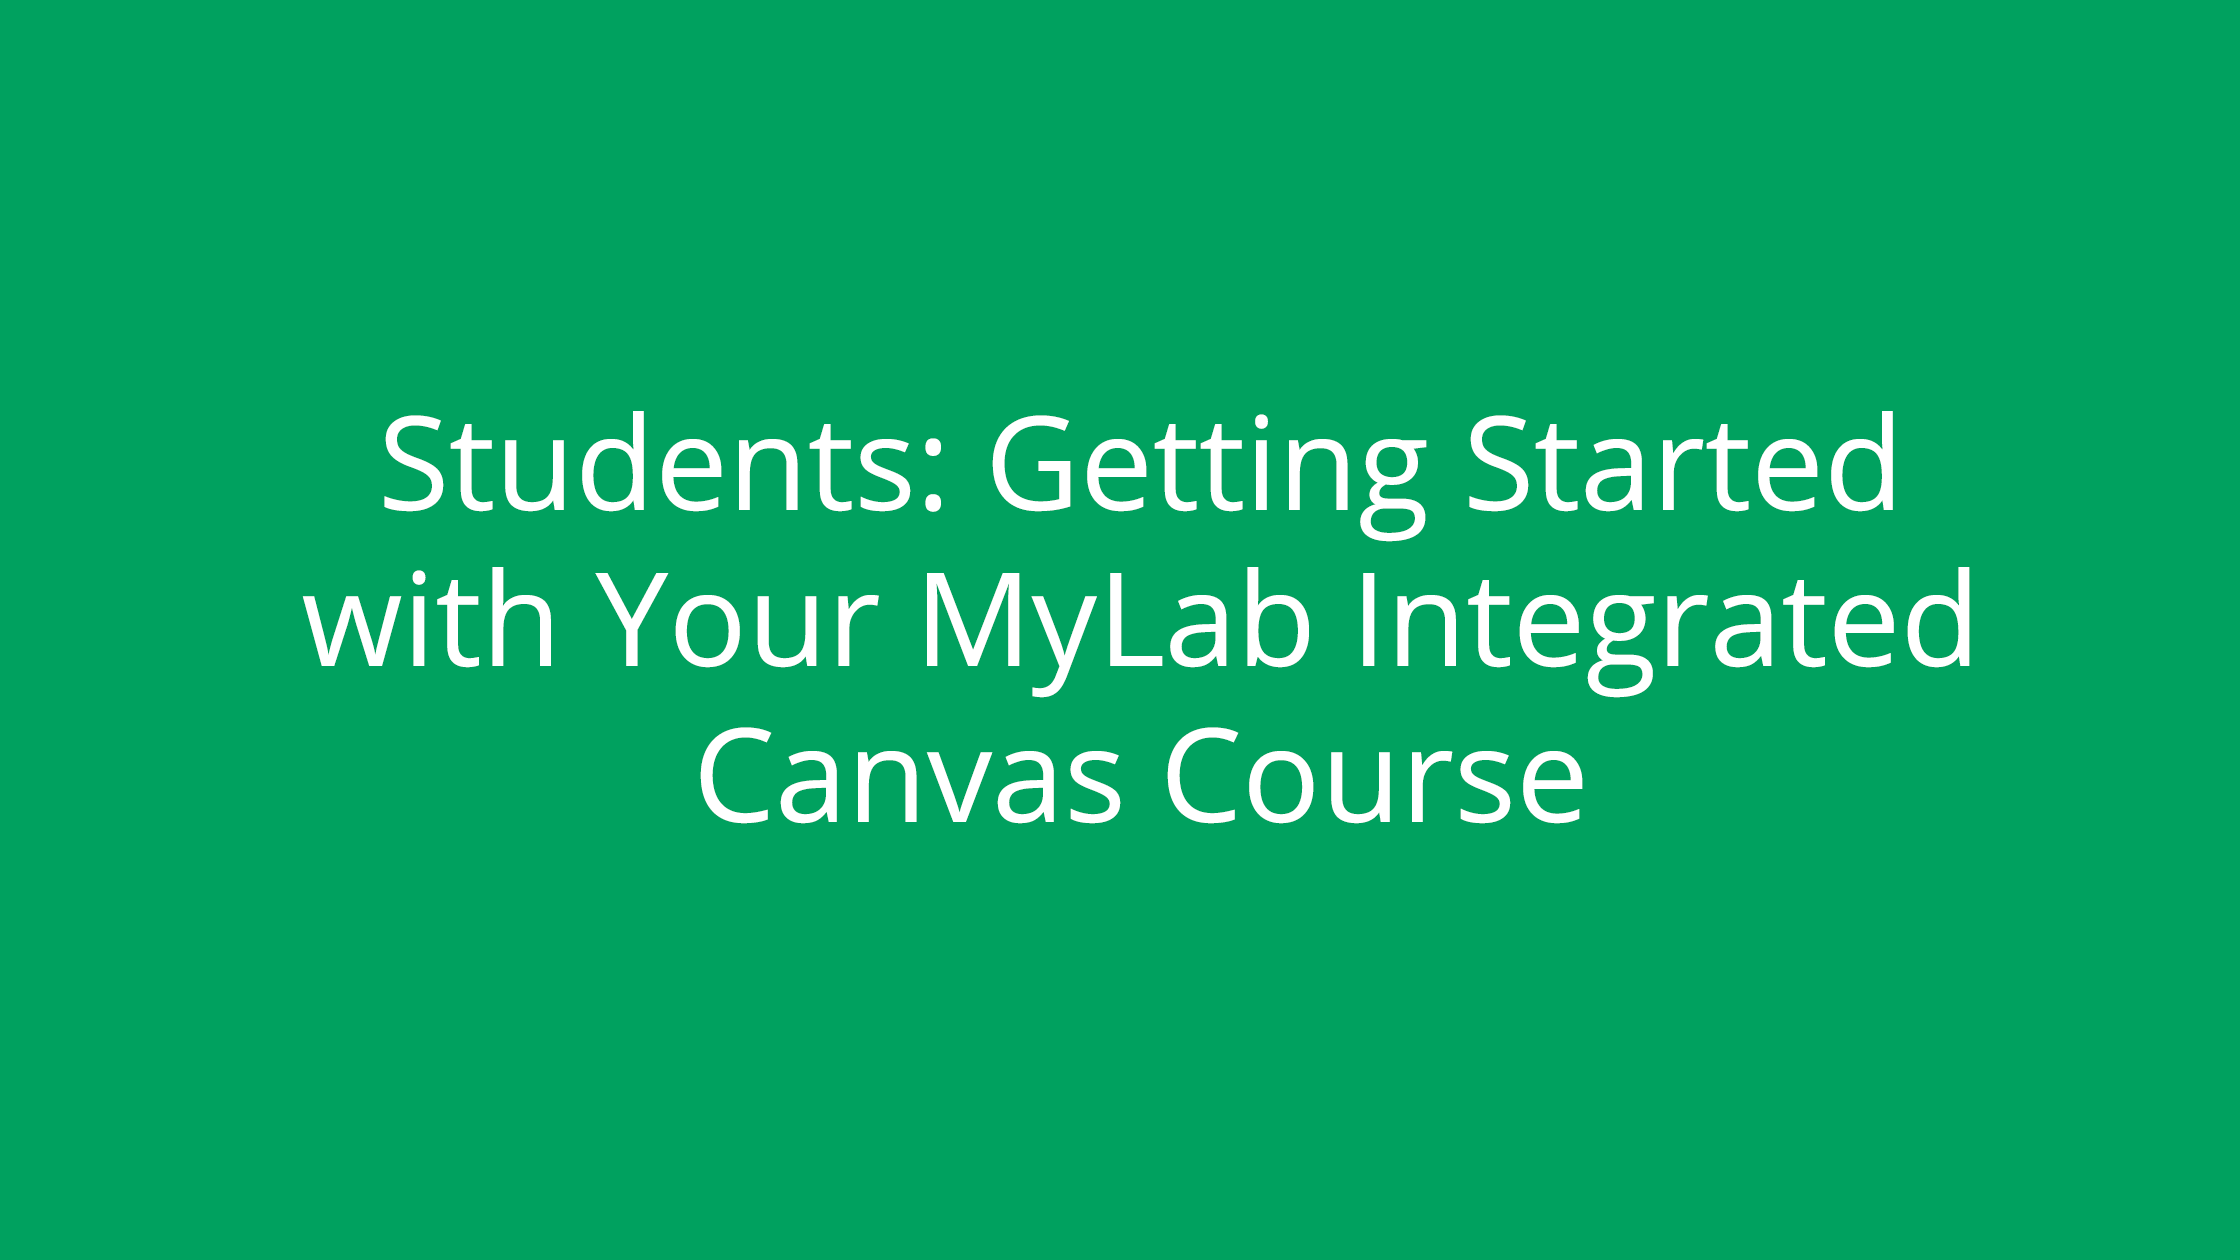 Students: Getting Started with Your MyLab Integrated Canvas Course